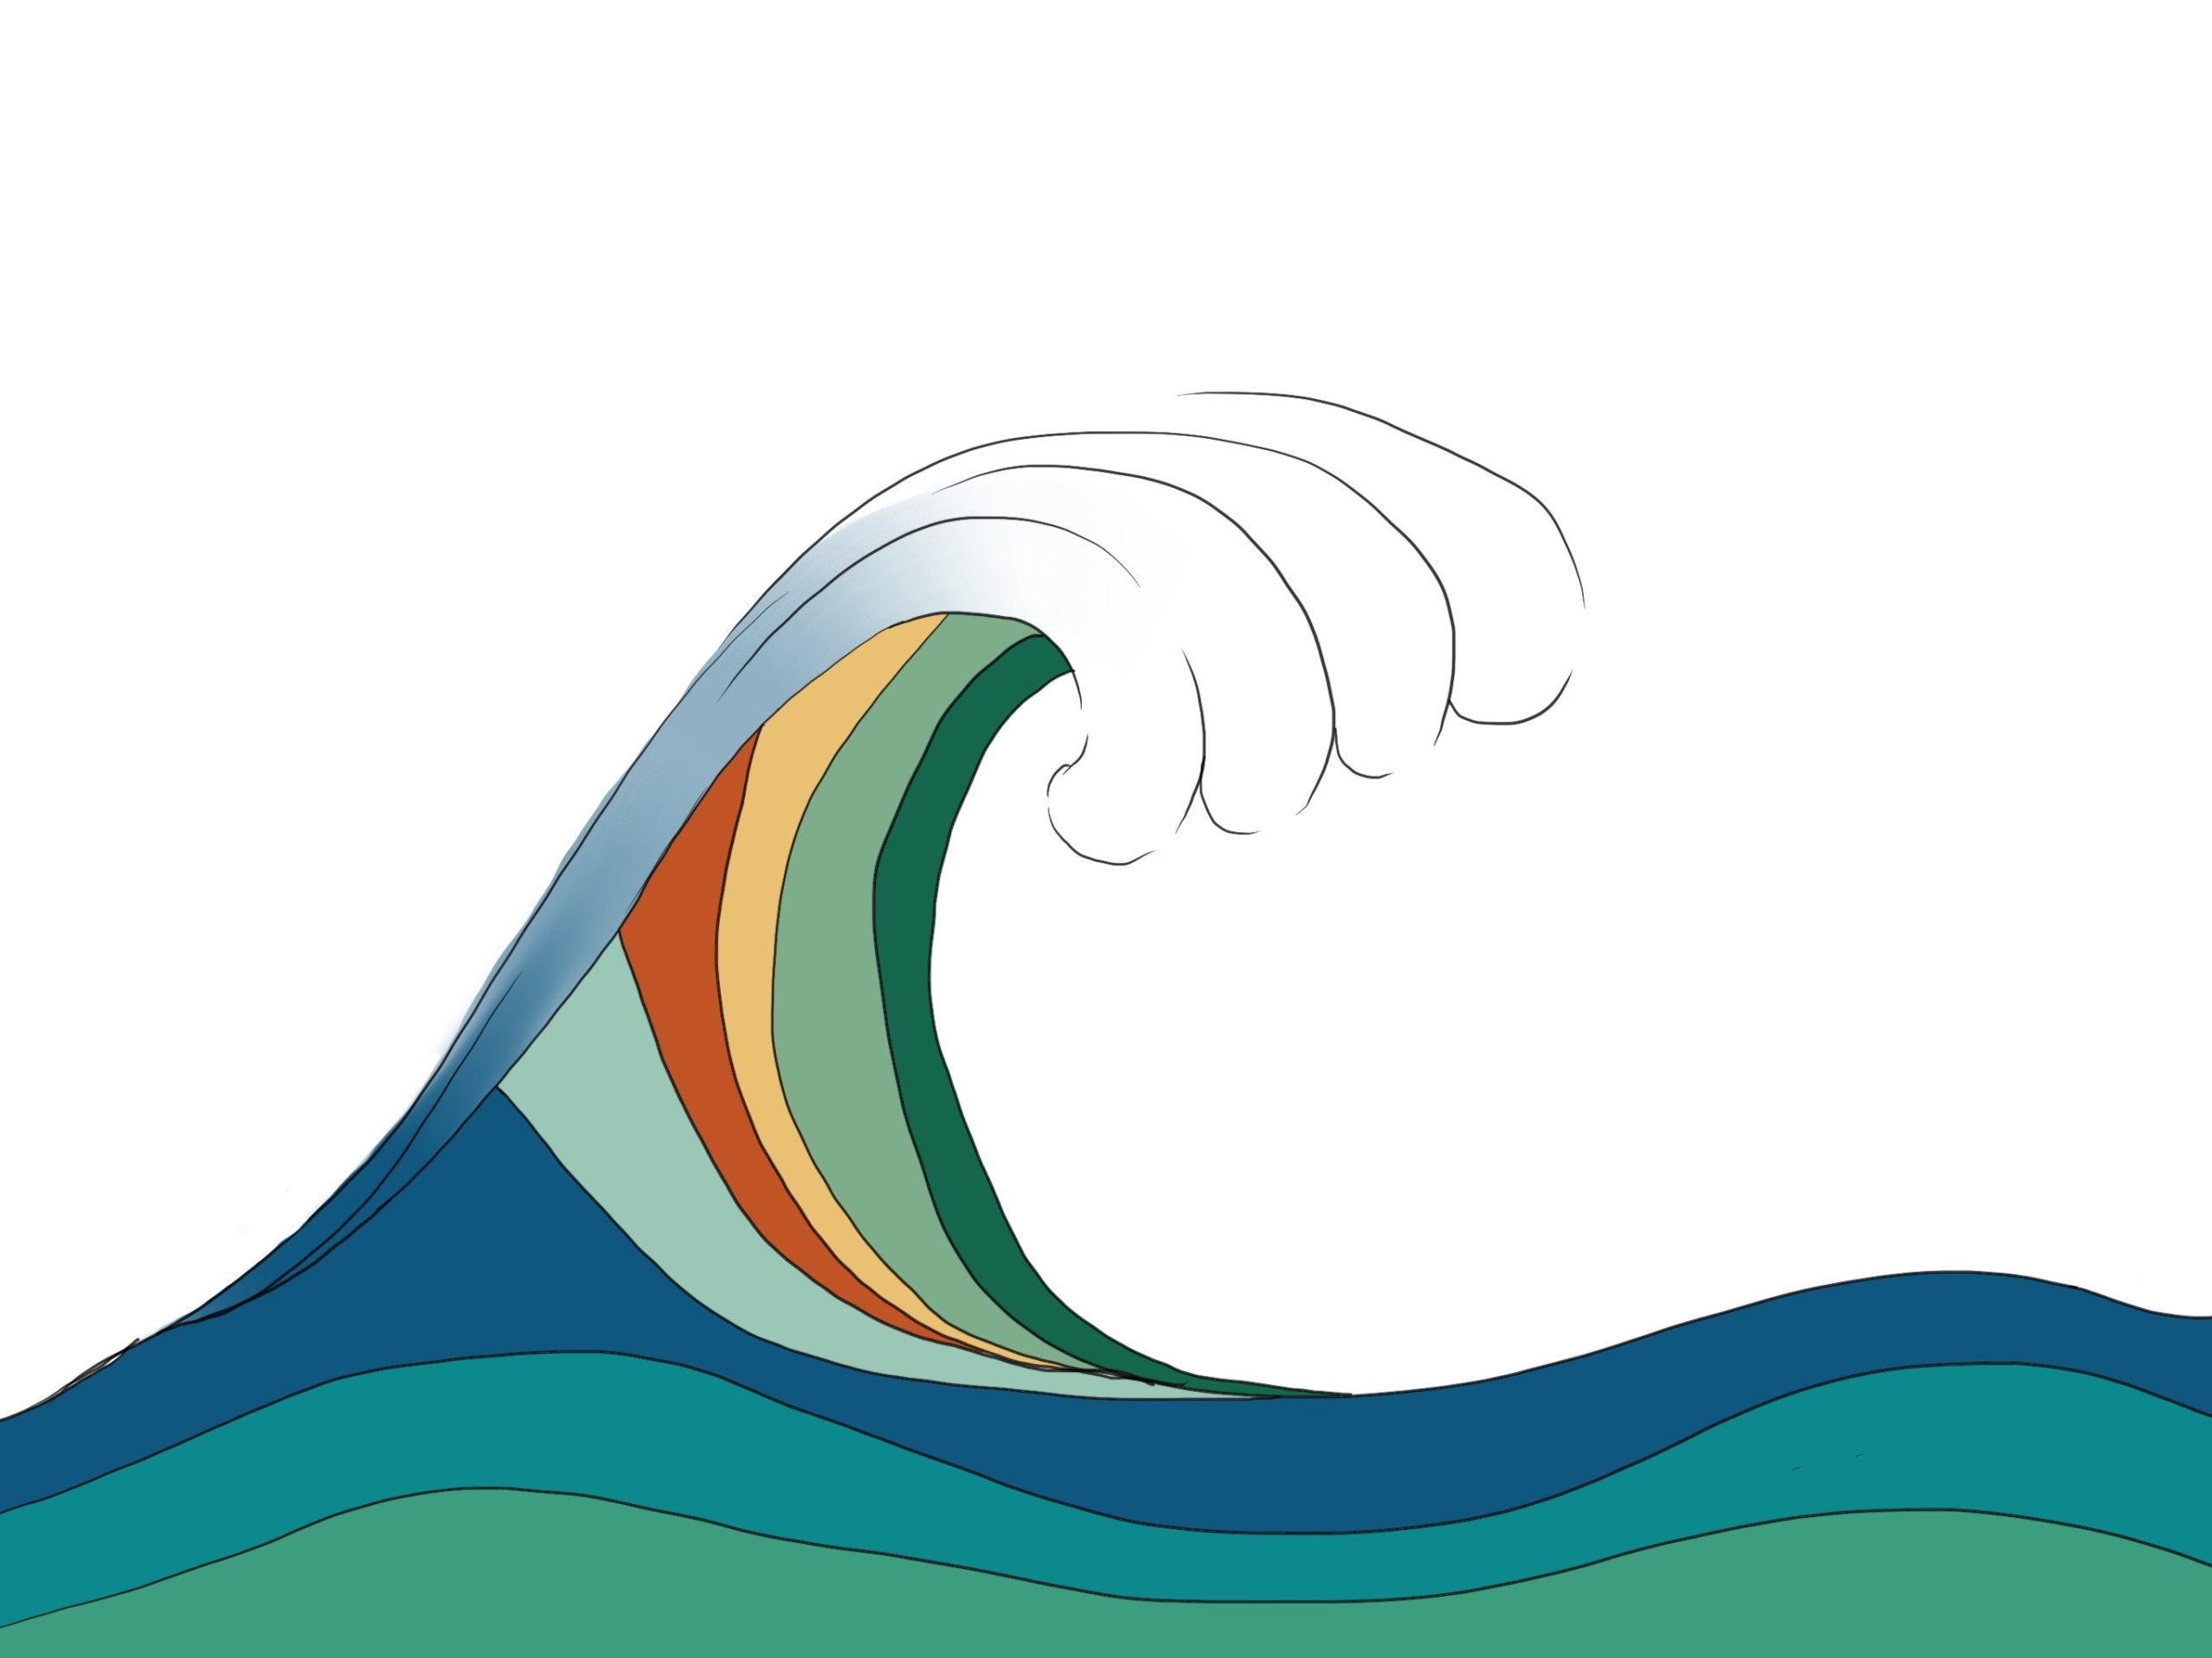 rounded wave with different colors